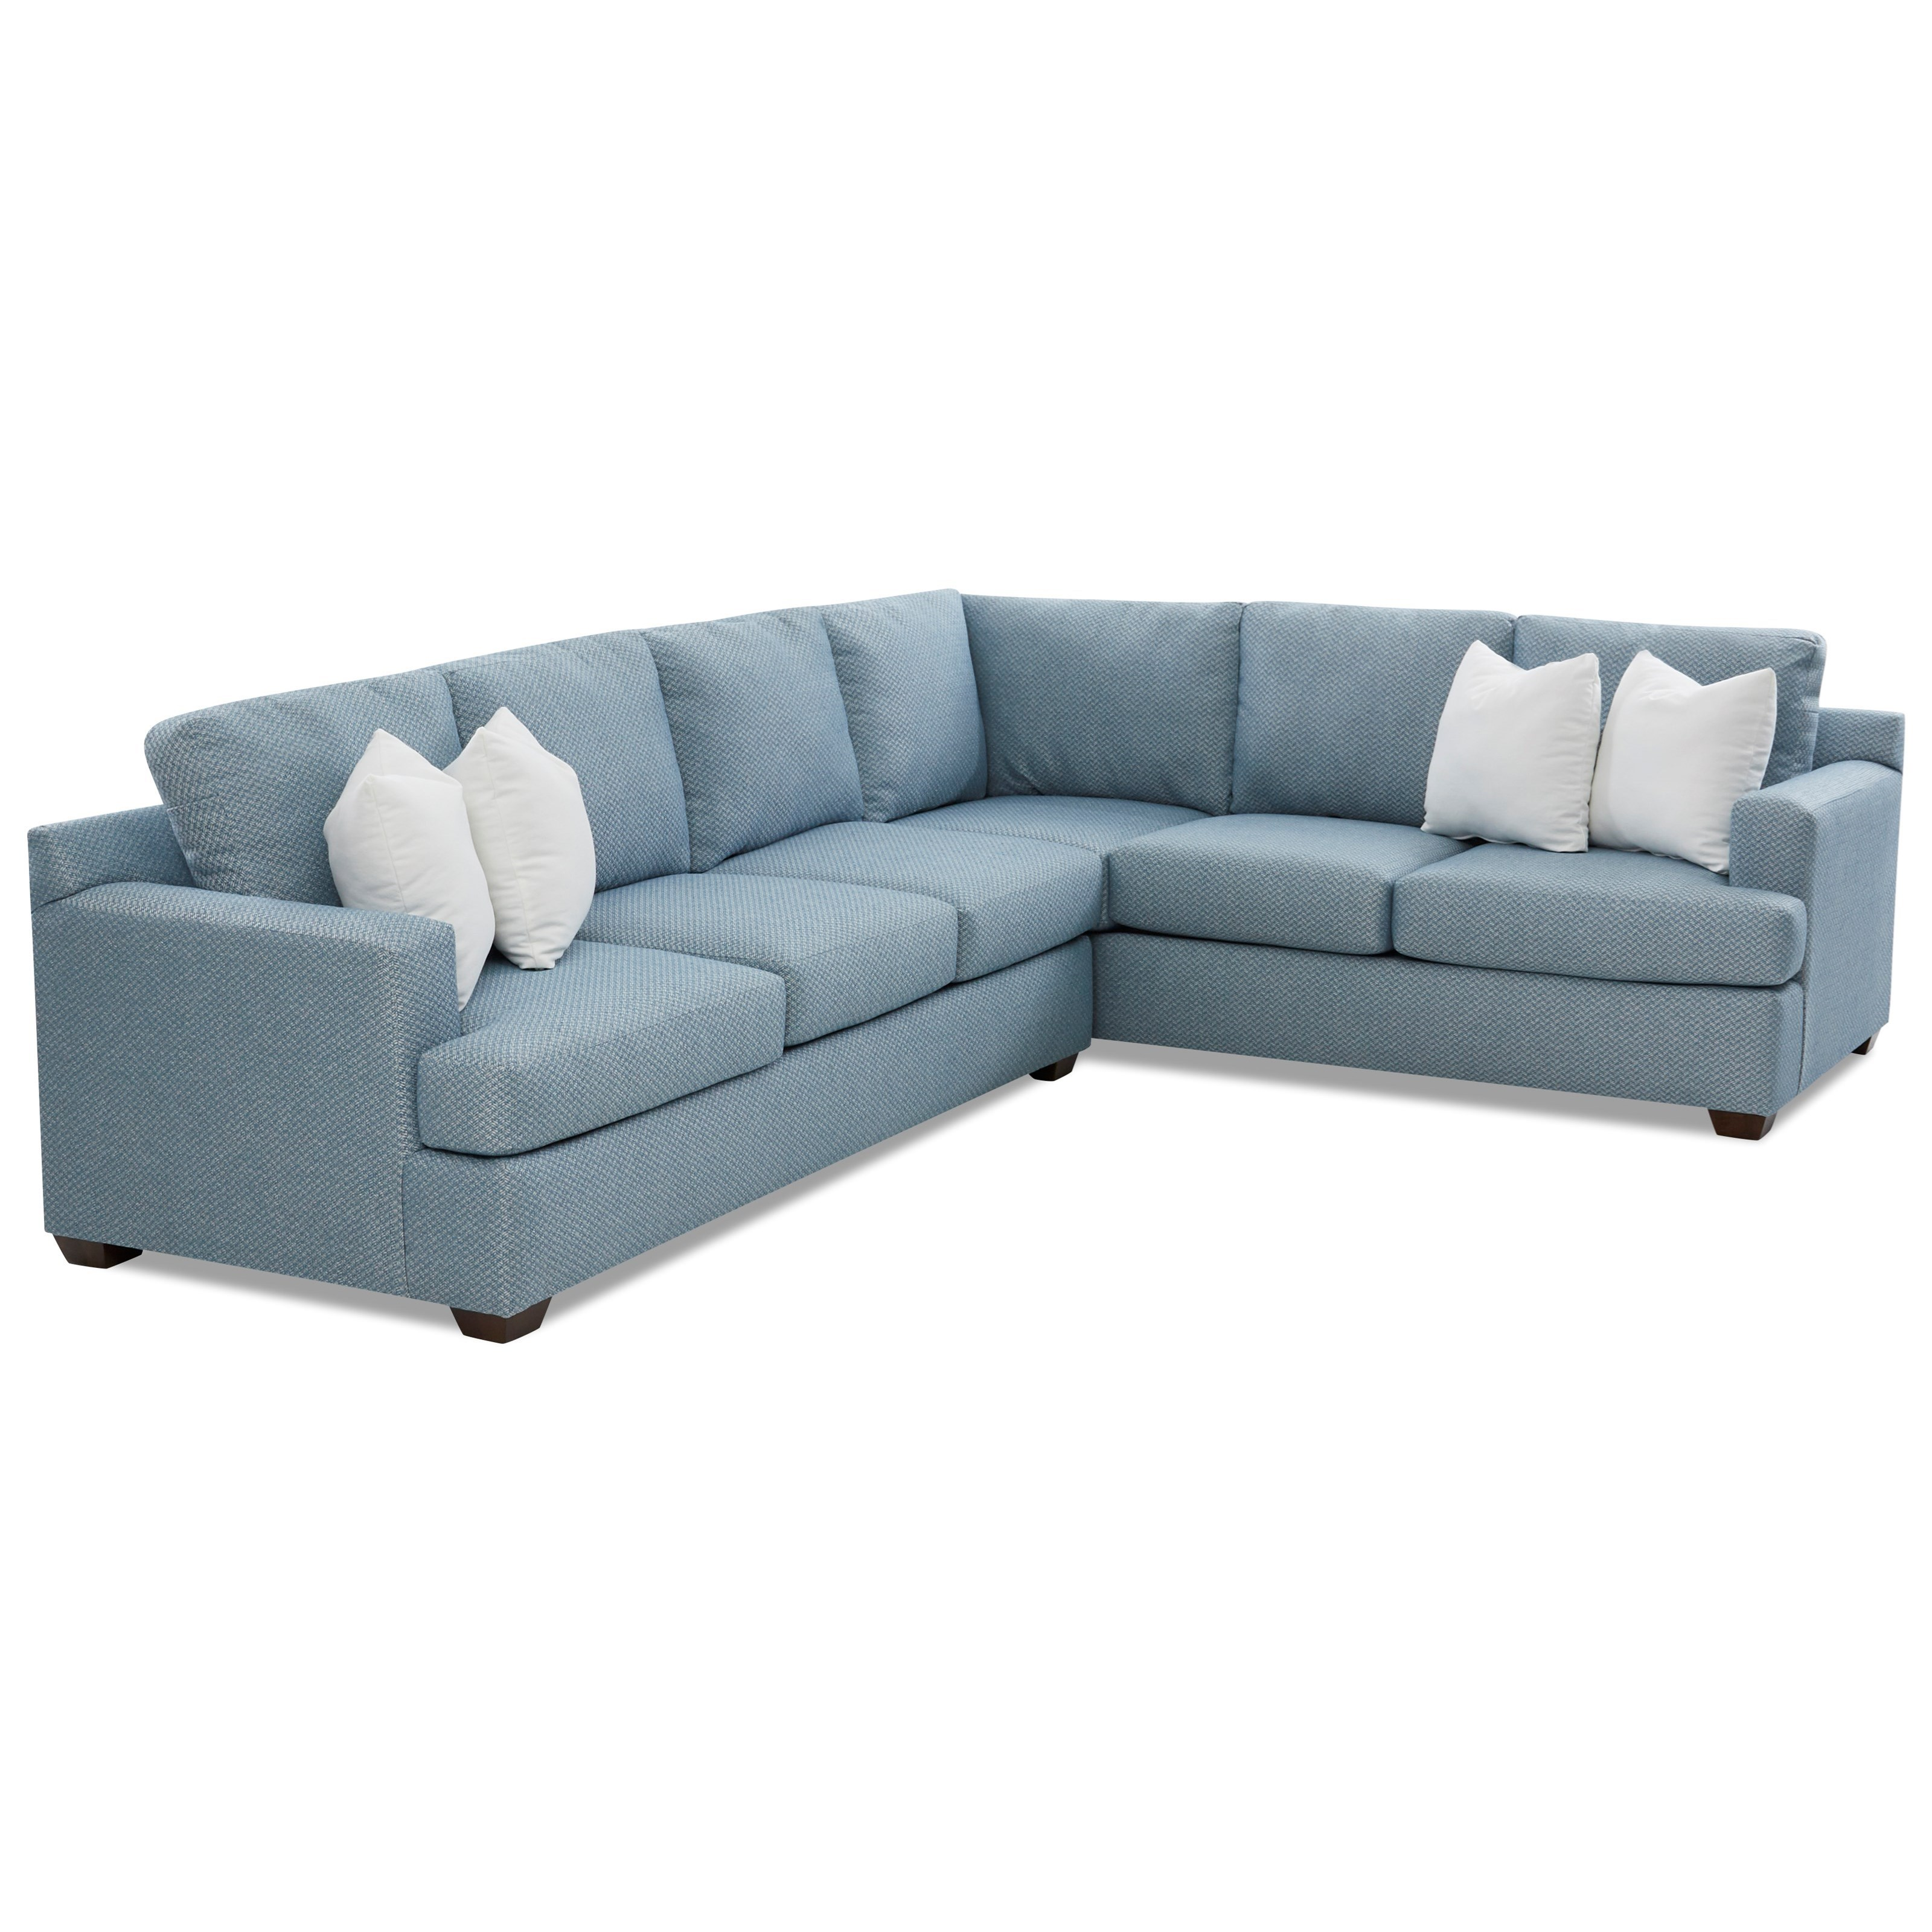 Juniper 5-Seat Sectional Sofa with RAF Corner by Klaussner at Johnny Janosik